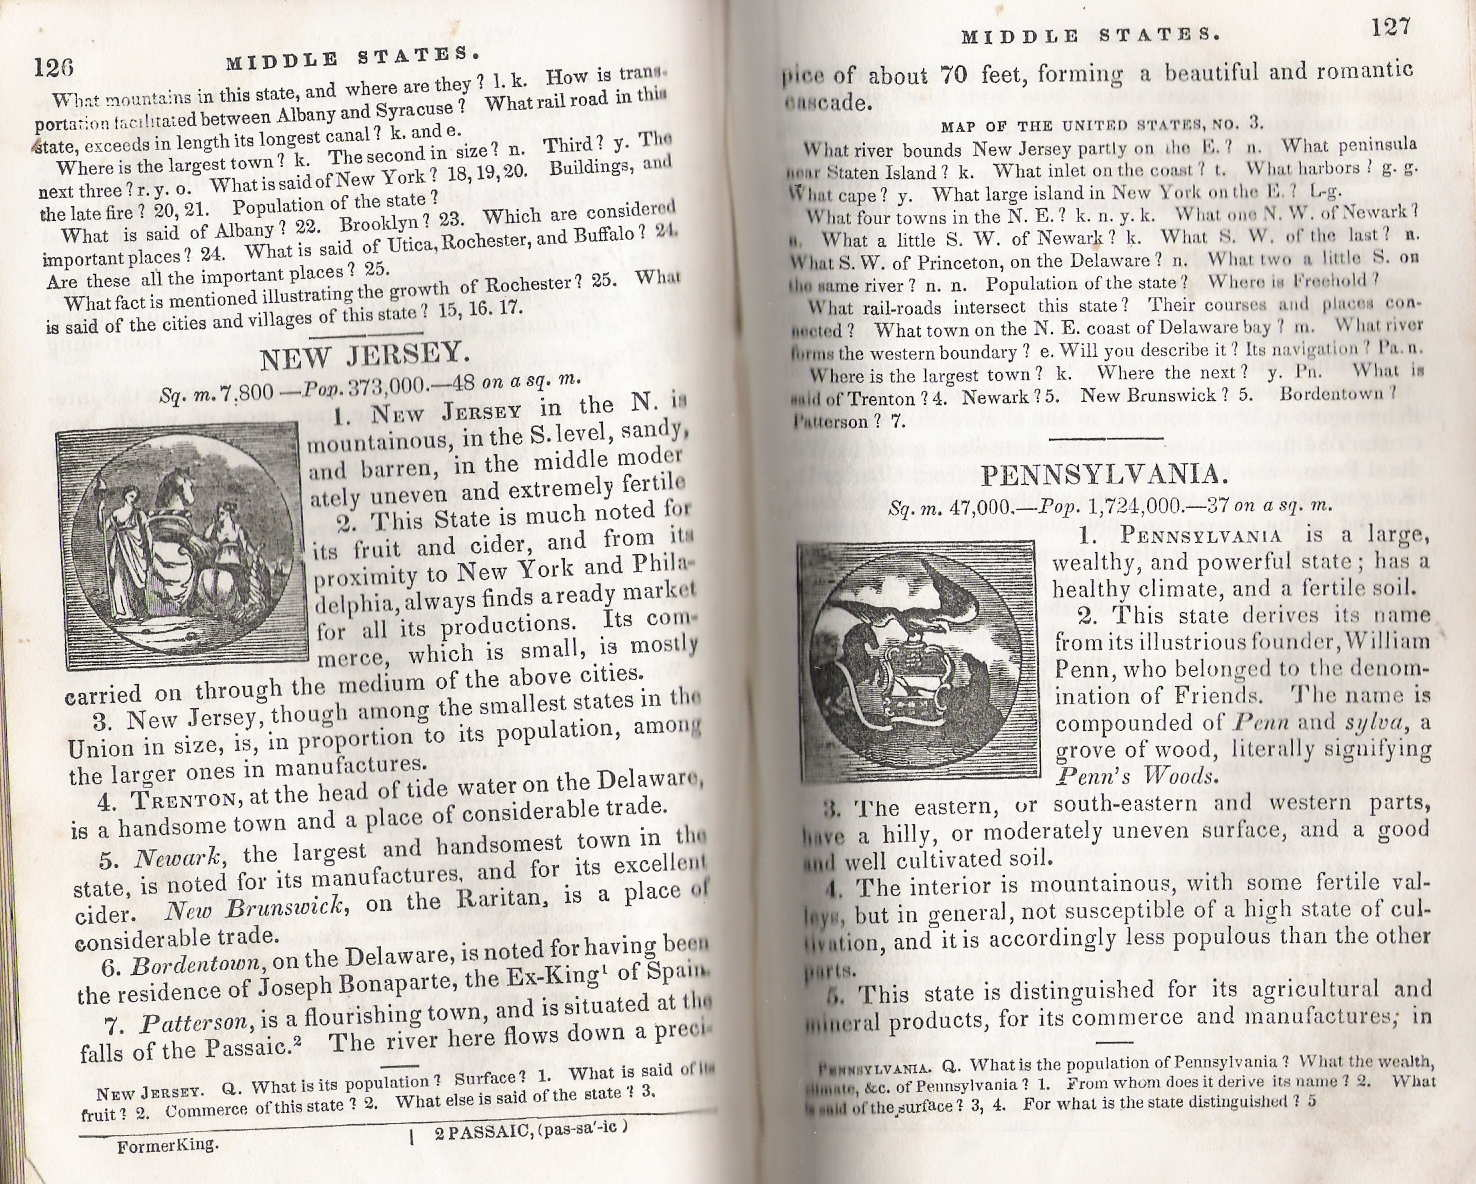 pennsylvania in old geography books 1850 1900